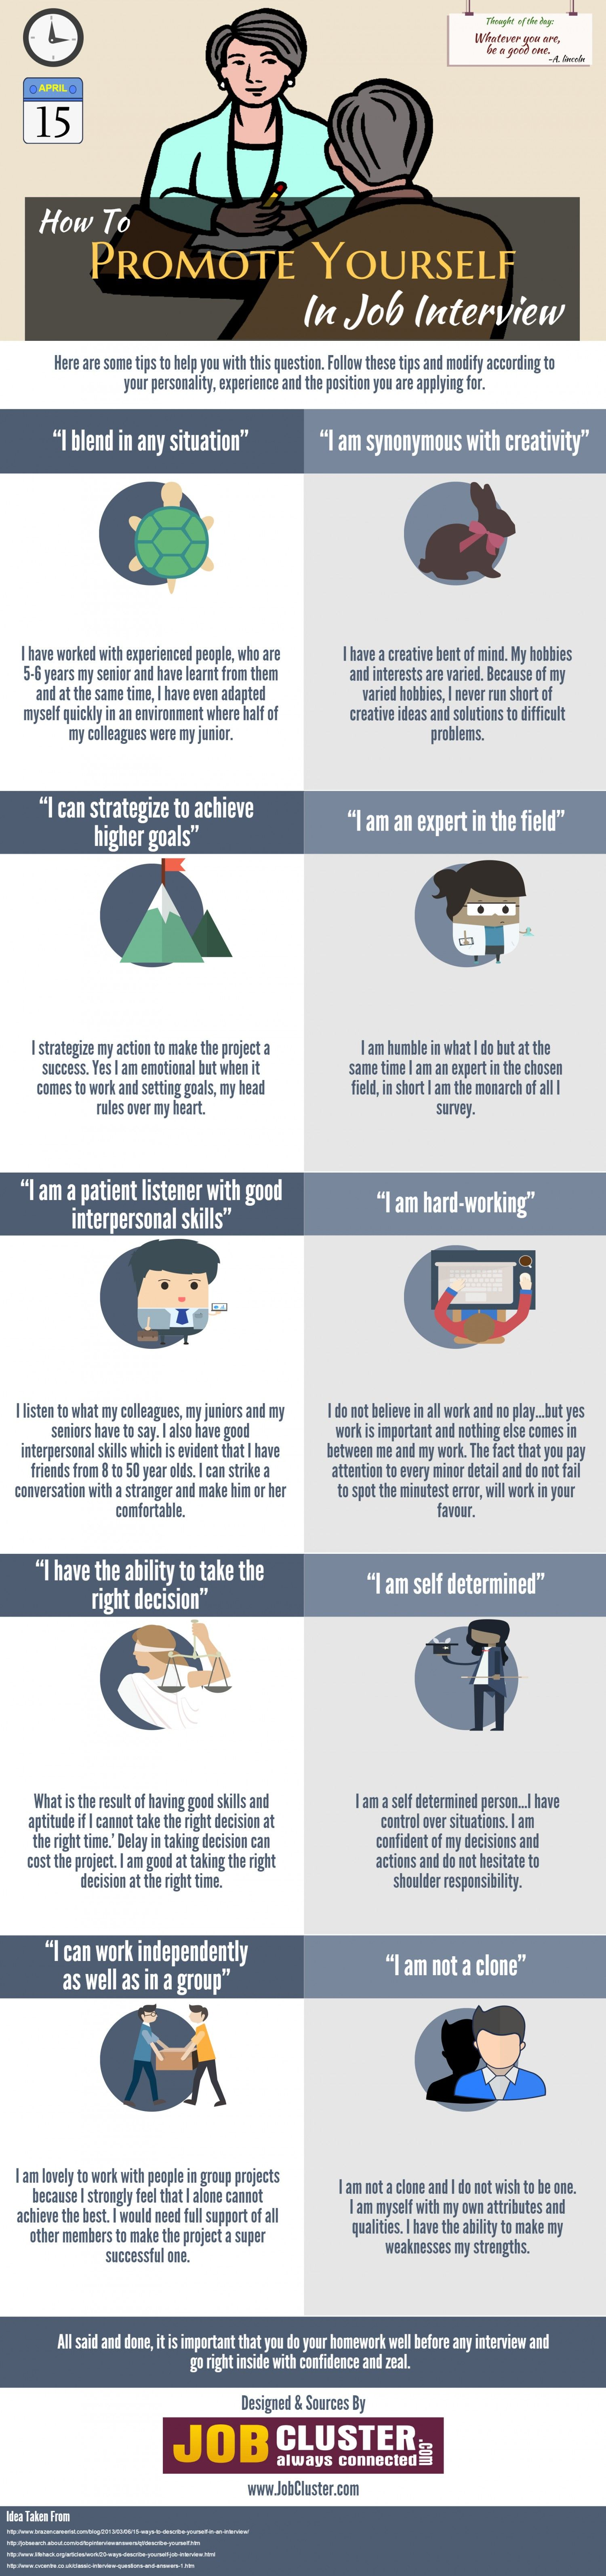 Beautiful How To Promote Yourself In Job Interview #Infographic